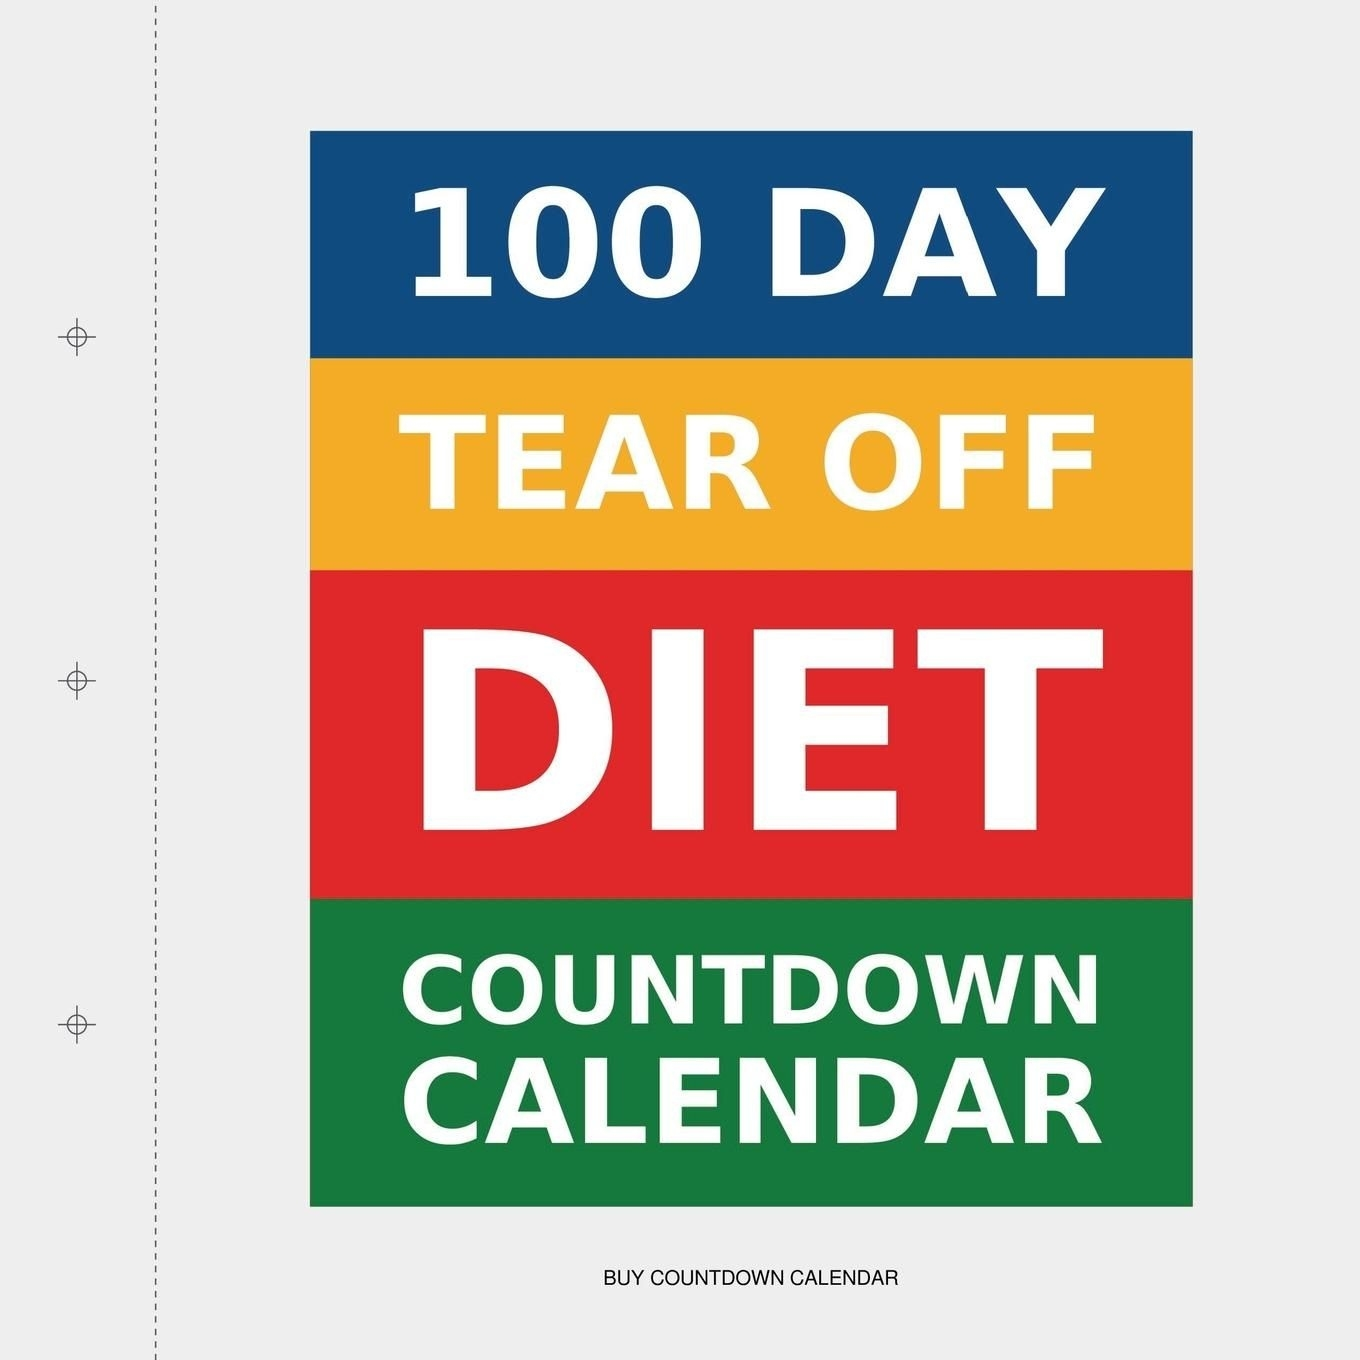 100 Day Tear-Off Diet Countdown Calendar | Products I Love | Diet 7 Day Countdown Calendar